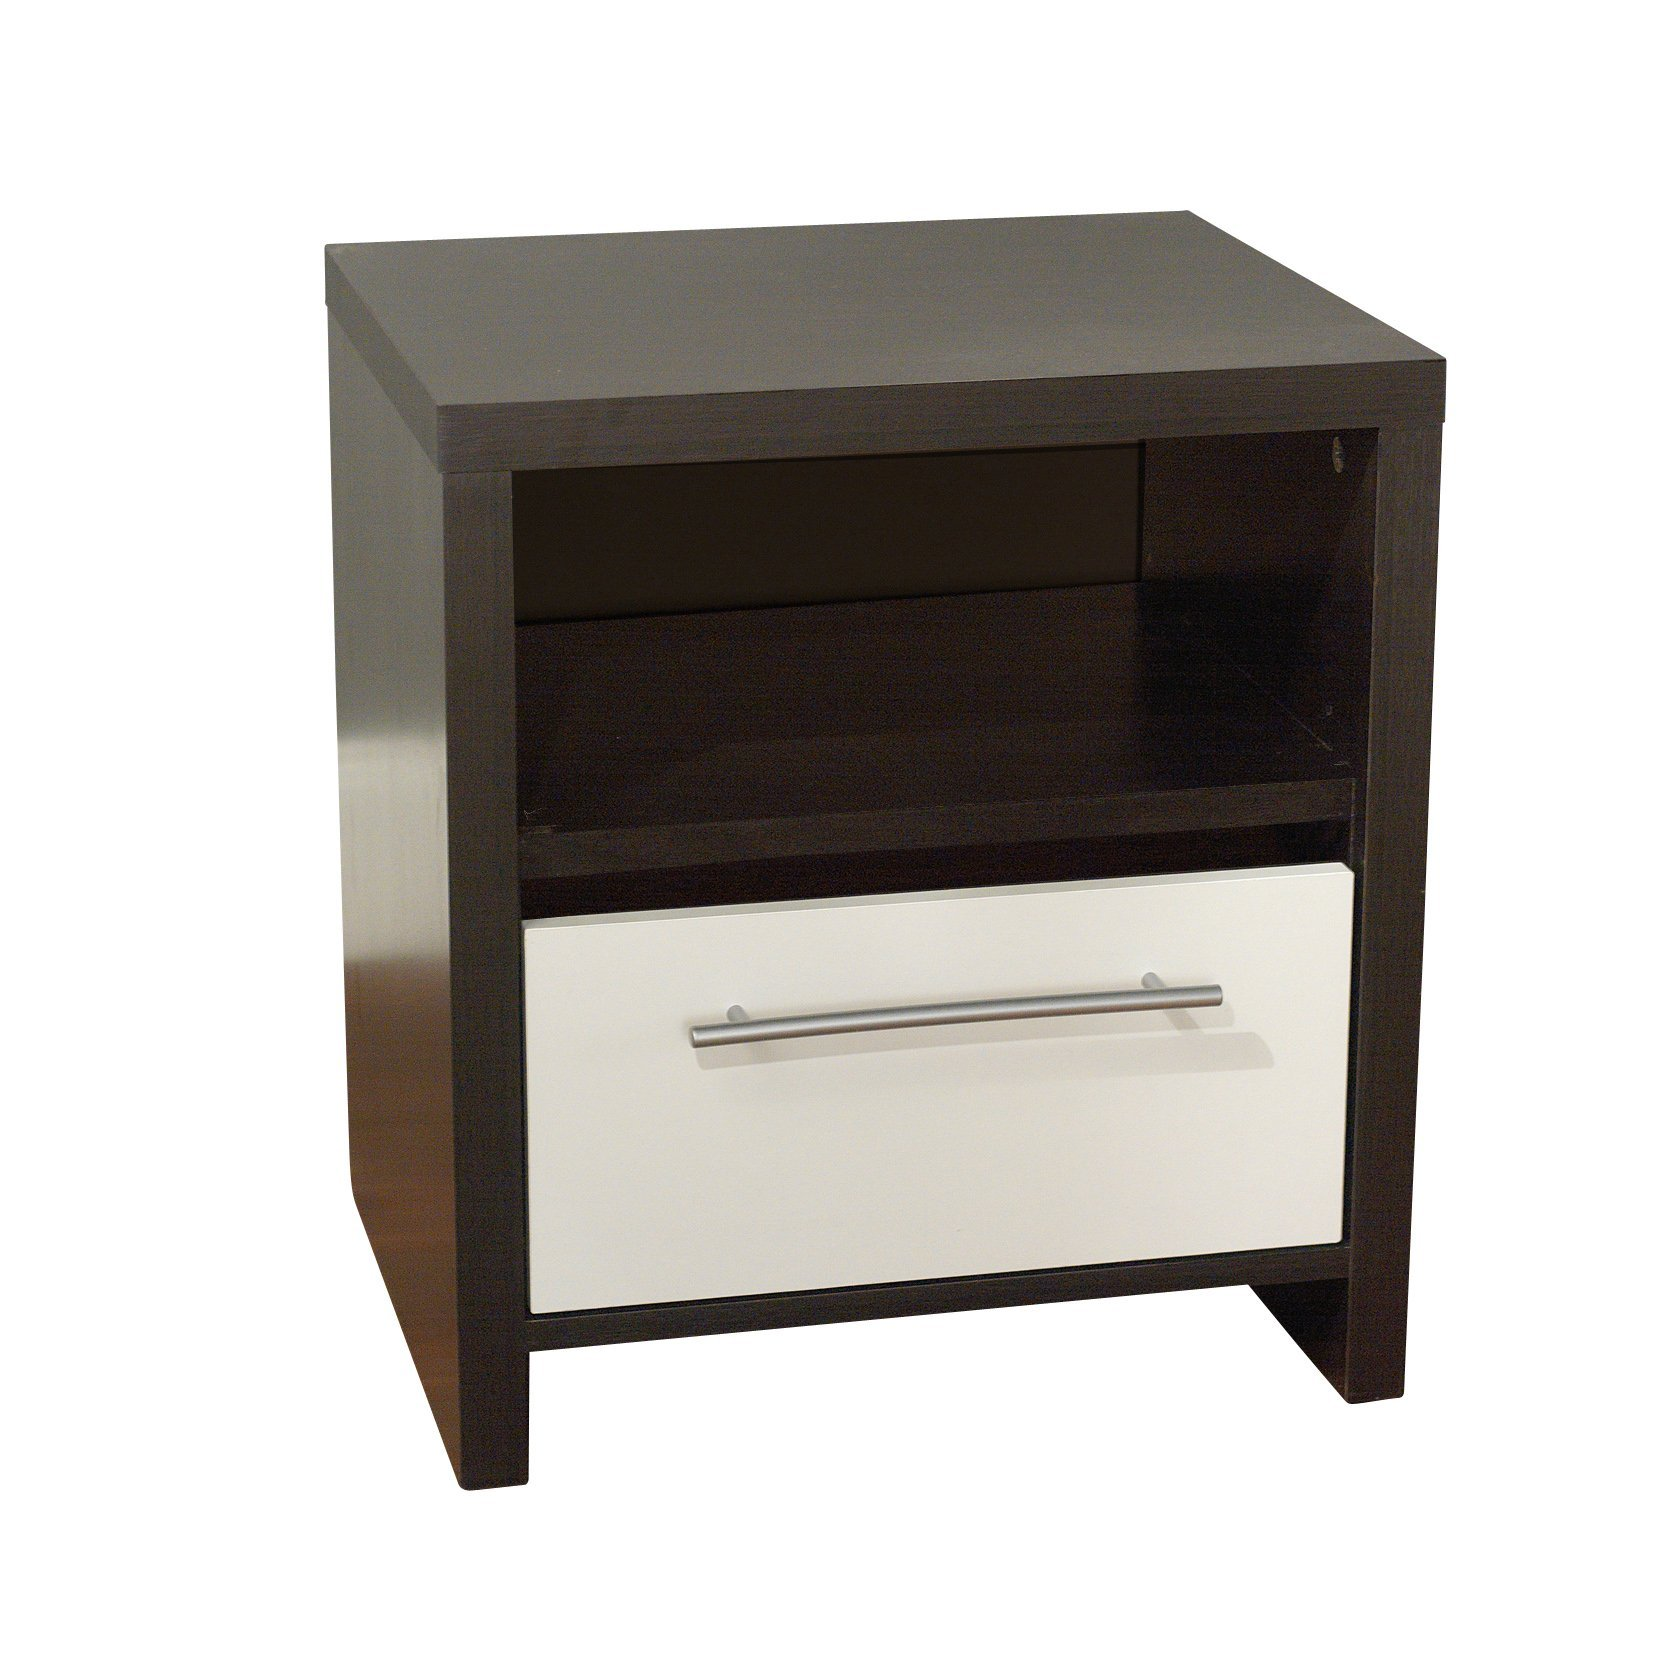 Target Marketing Systems Two-Toned Contemporary Nightstand with 1 Open Shelf and 1 Drawer, Espresso/White